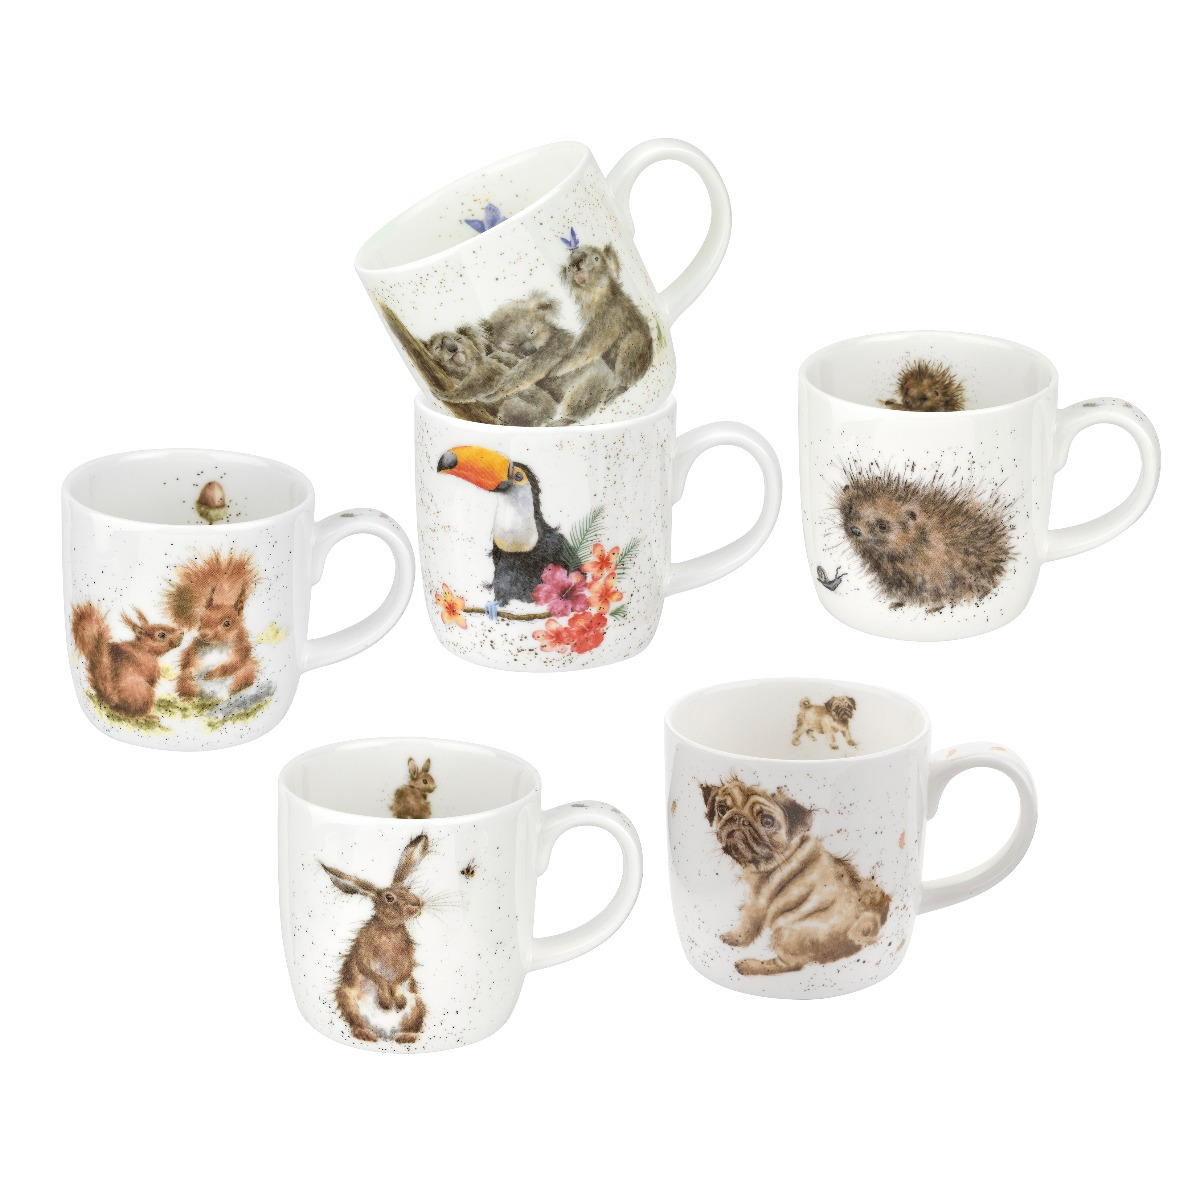 Royal Worcester Wrendale Designs Mixed Set of 6 Mugs